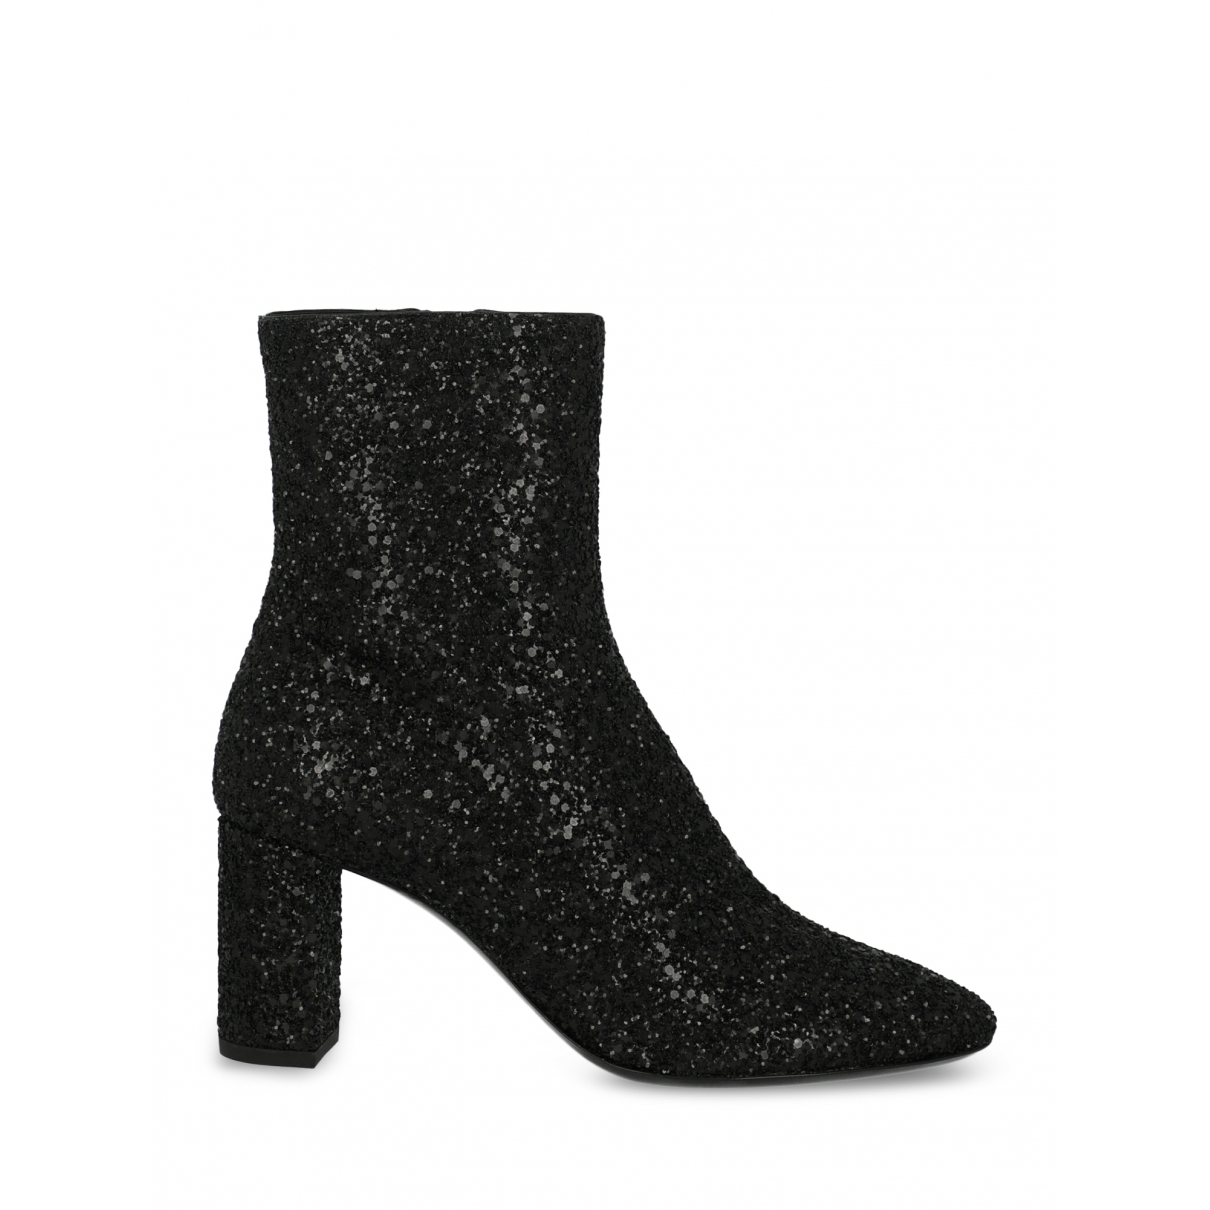 Saint Laurent \N Black Glitter Ankle boots for Women 38 EU